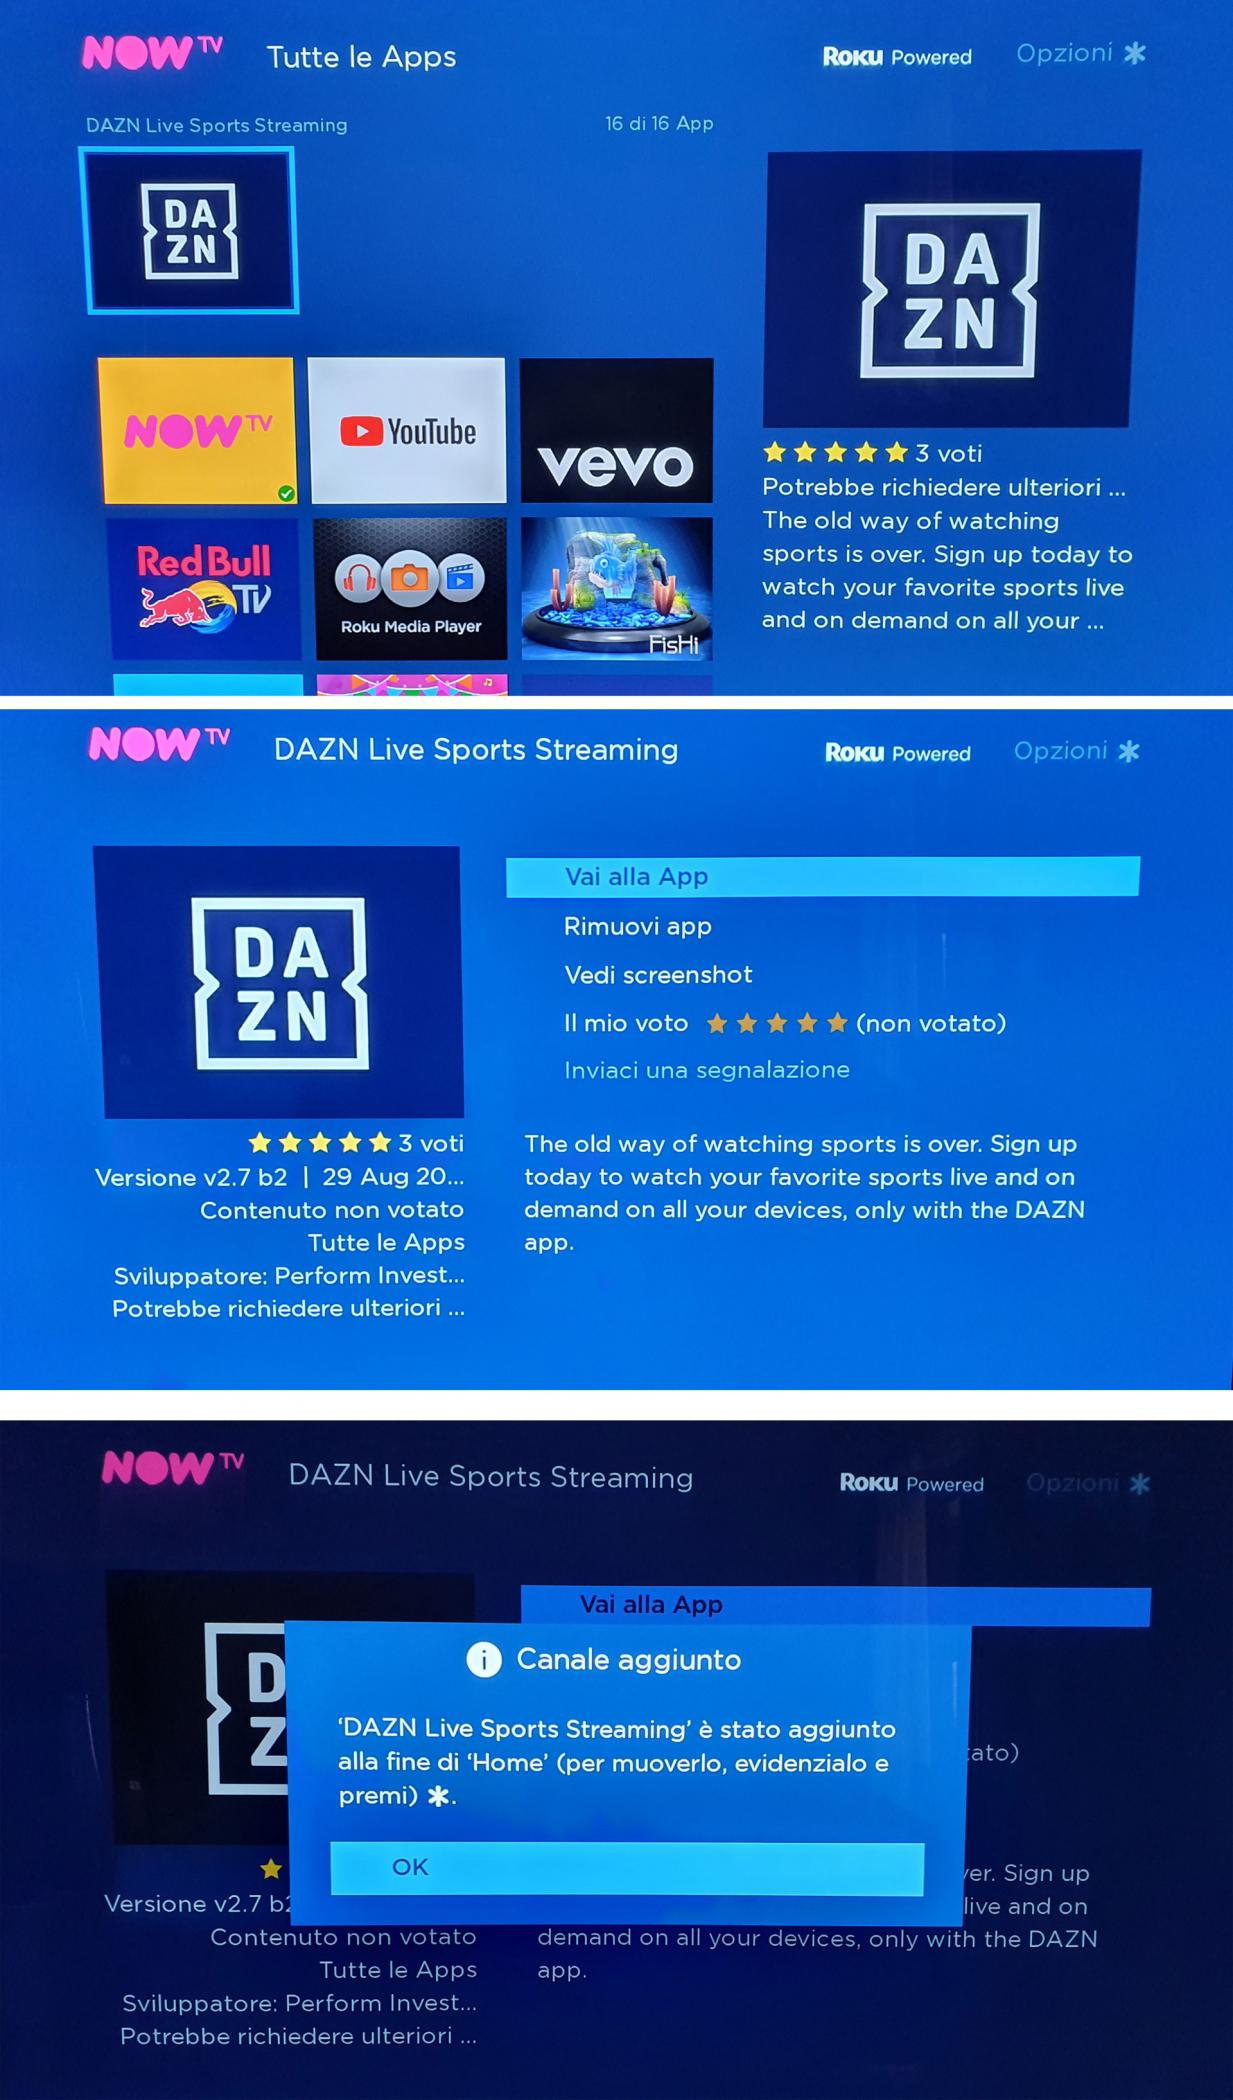 SCARICARE APP DAZN SU NOW TV